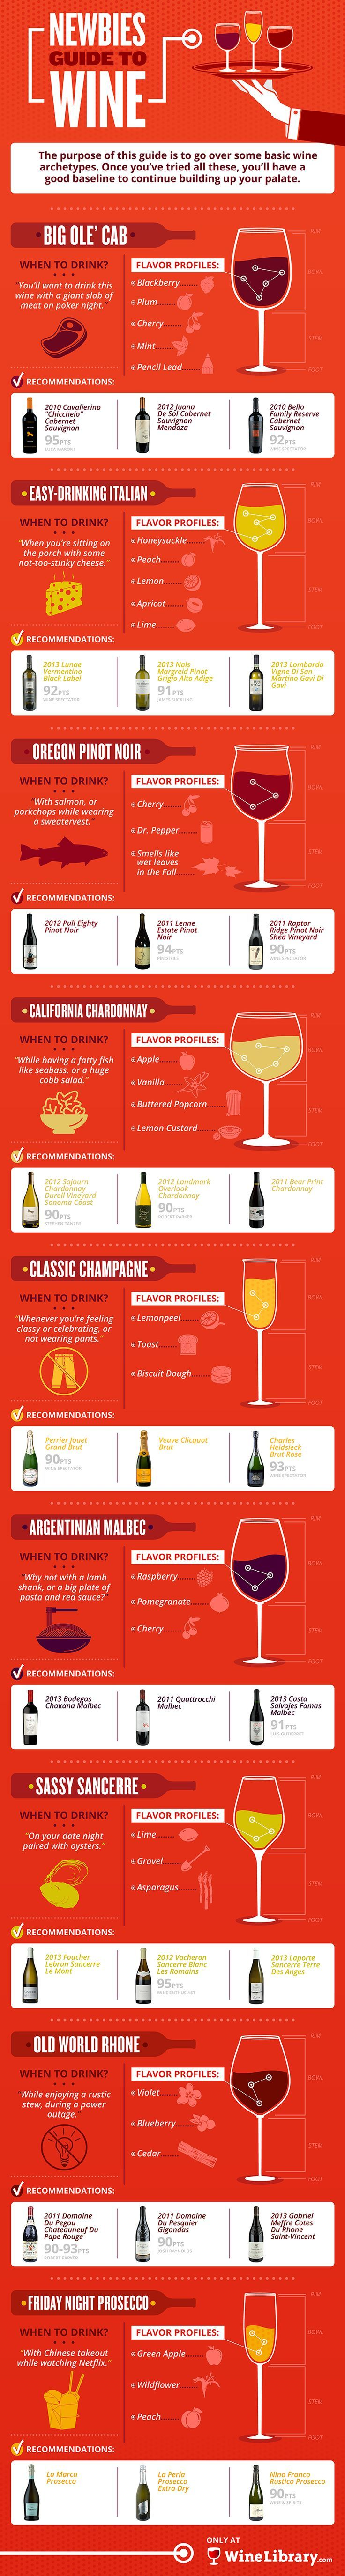 So You Ve Made The Plunge And Decided To Finally Get Into Wine Congratulations Every Single One Of These Delicious Affordable Wine Drinks Wine Recipes Wine